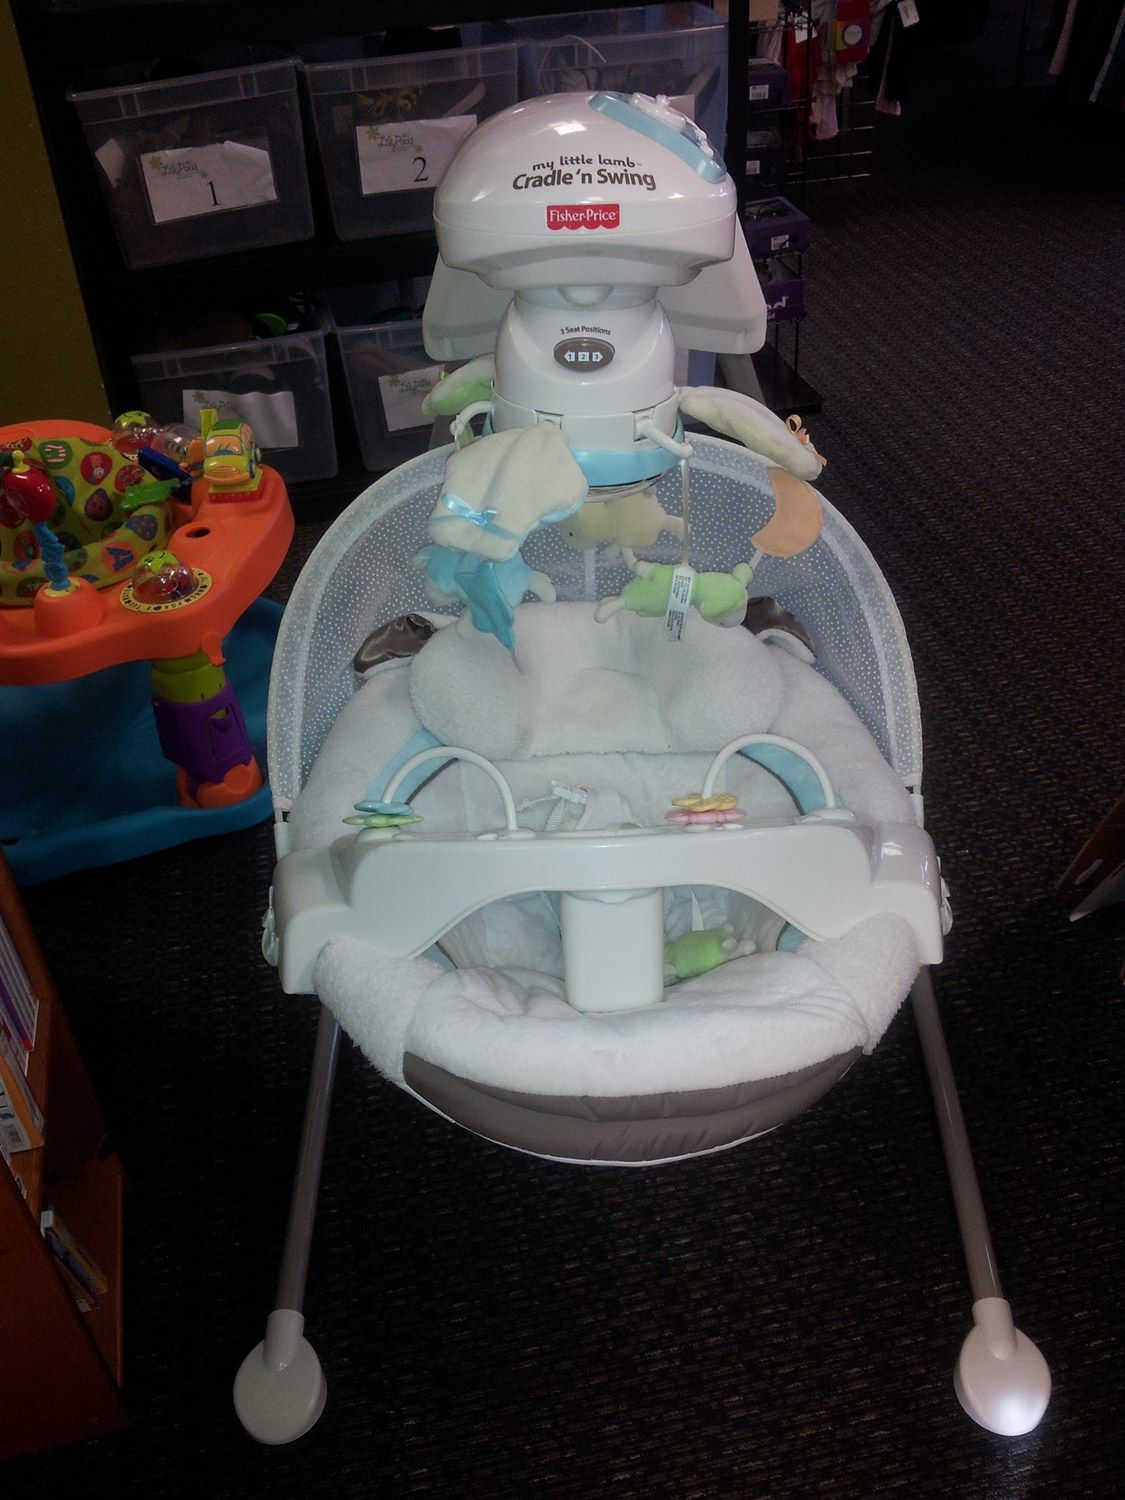 Fisher Price My Little Lamb Cradle N Swing The Fisher Price My